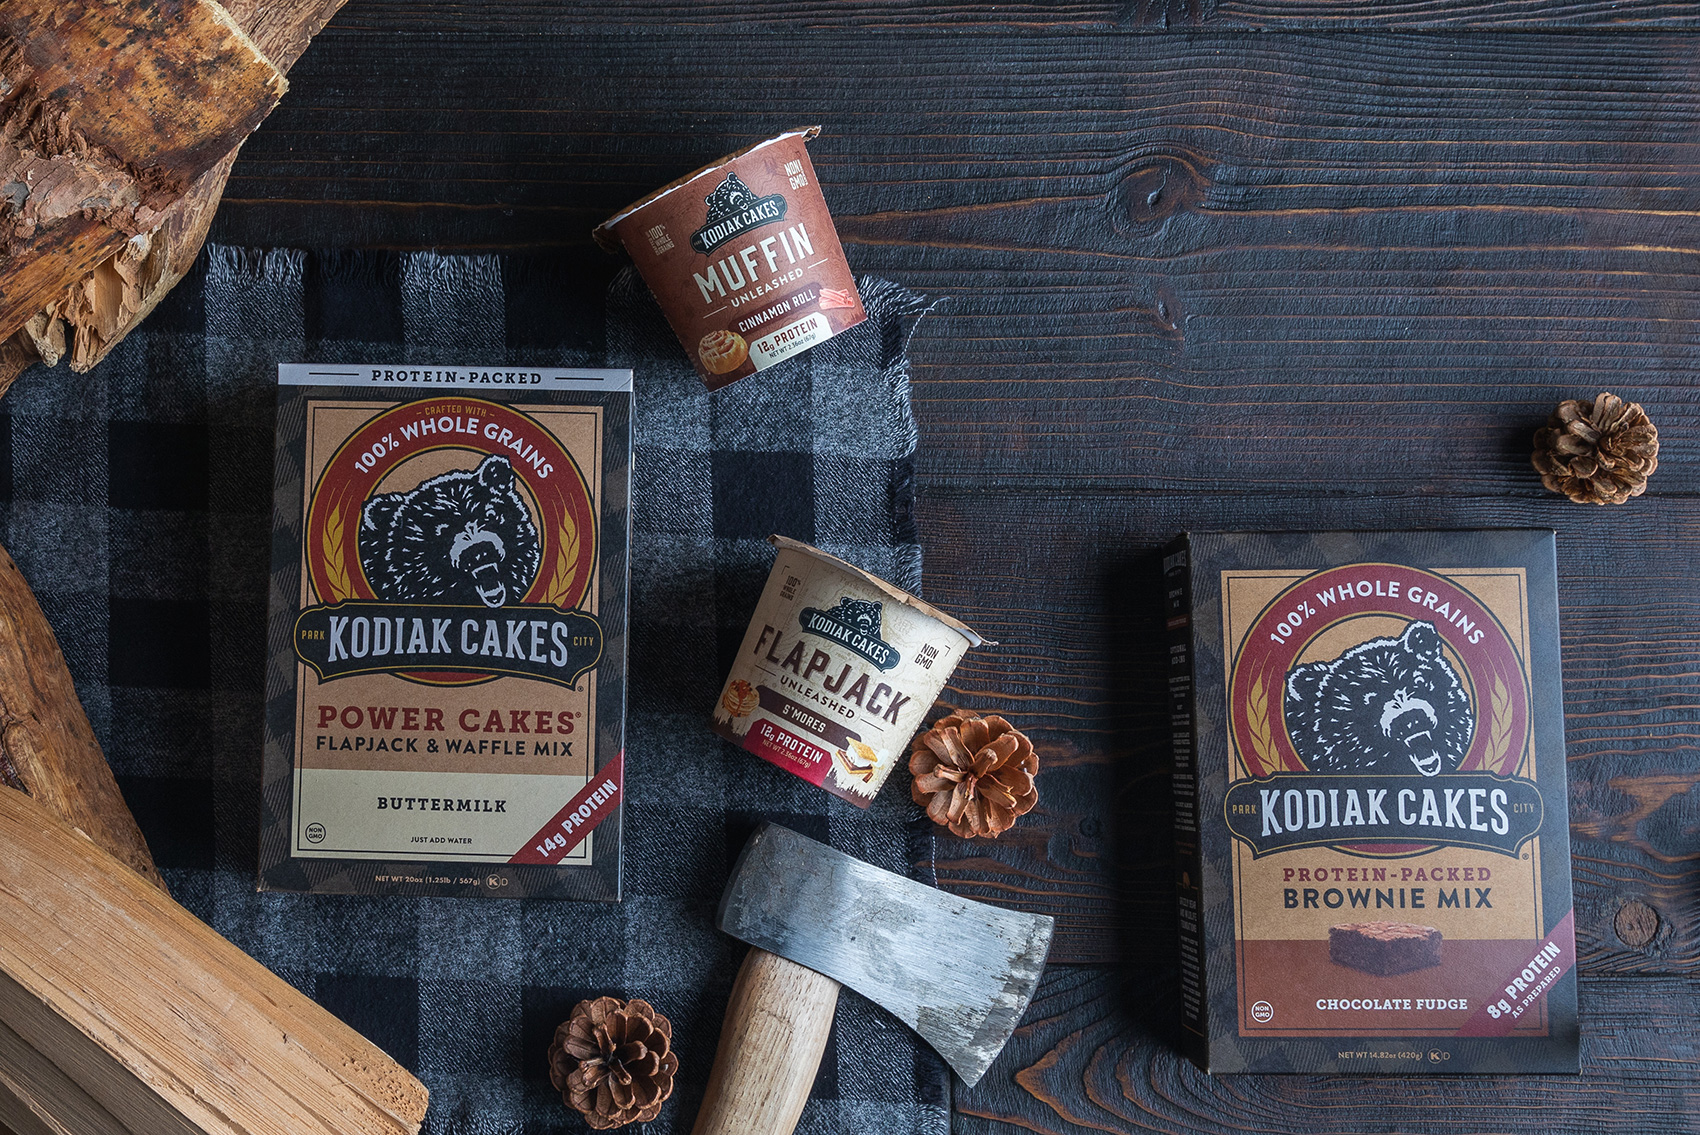 Kodiak Cakes Products